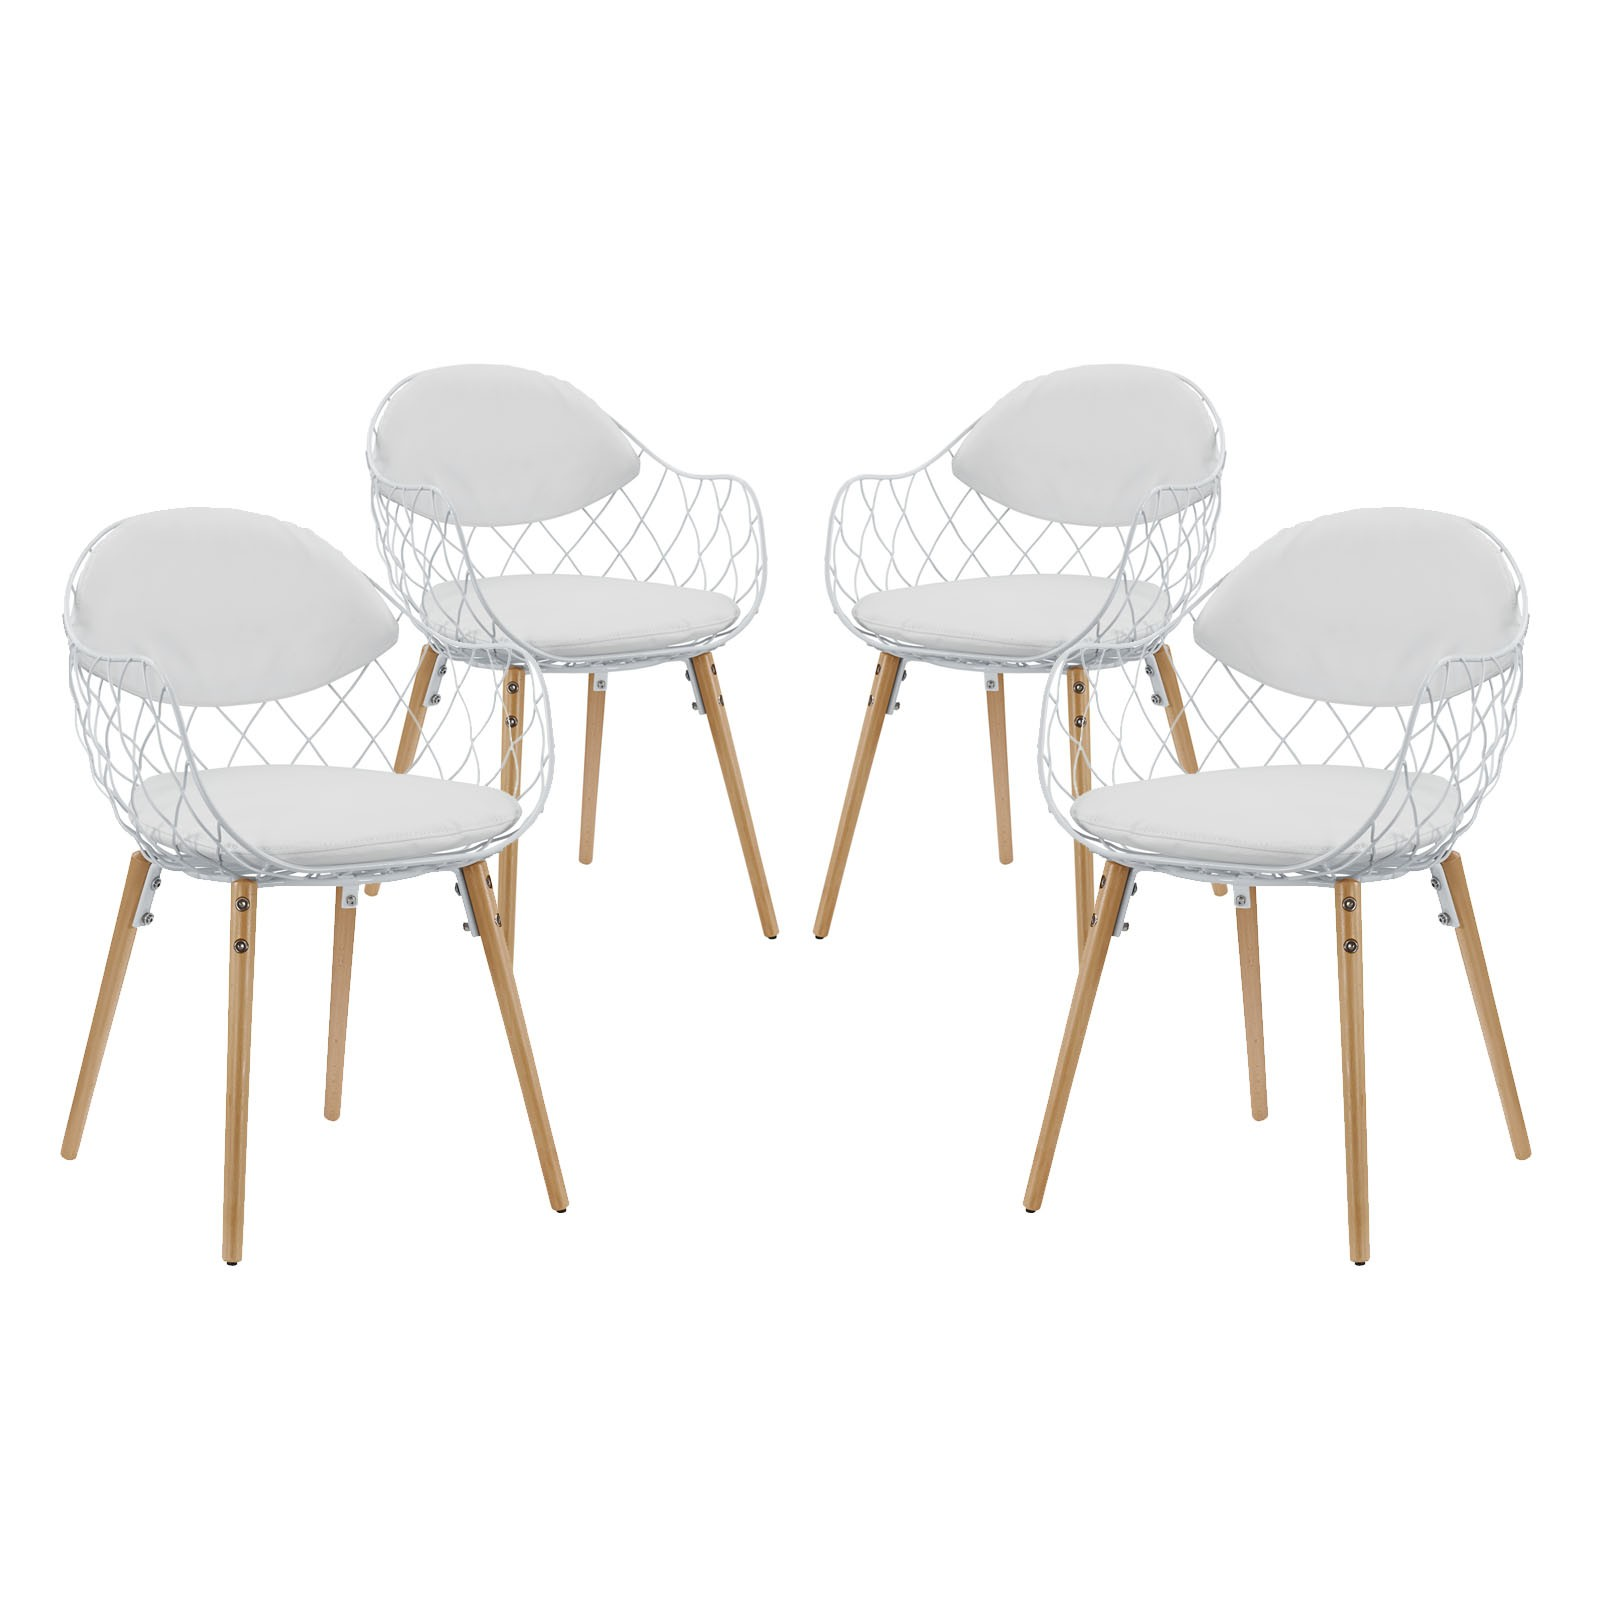 Basket Dining Set Set of 4